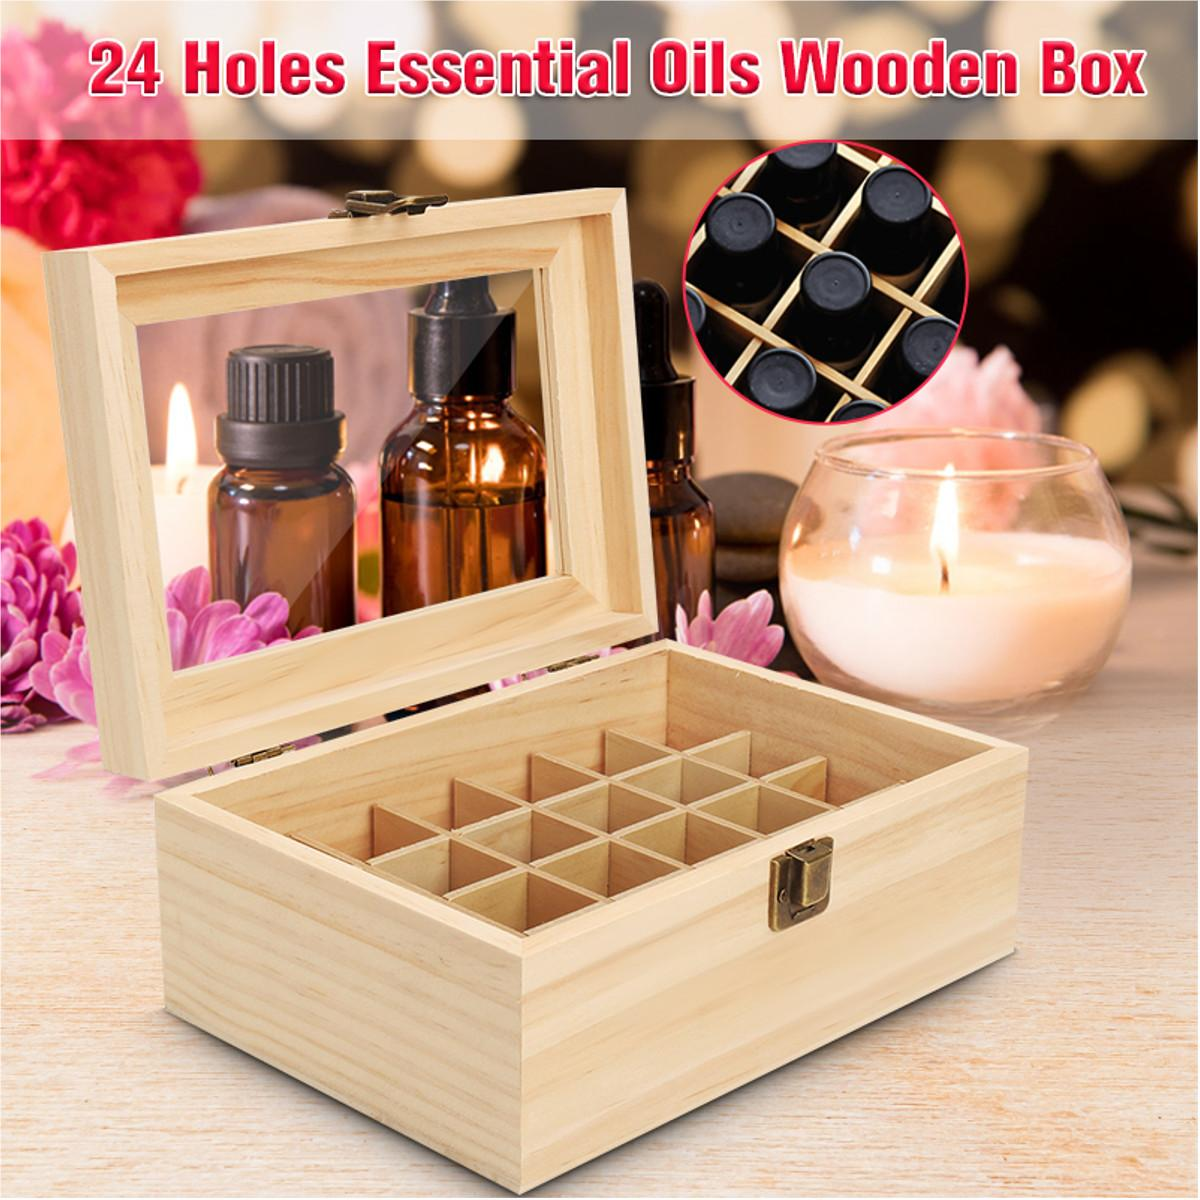 Essential Oils Box 24 Slots Clear Window Aromatherapy Storage Organizer 5ml-15ml Bottles Solid Pine Wood Case Holder Container